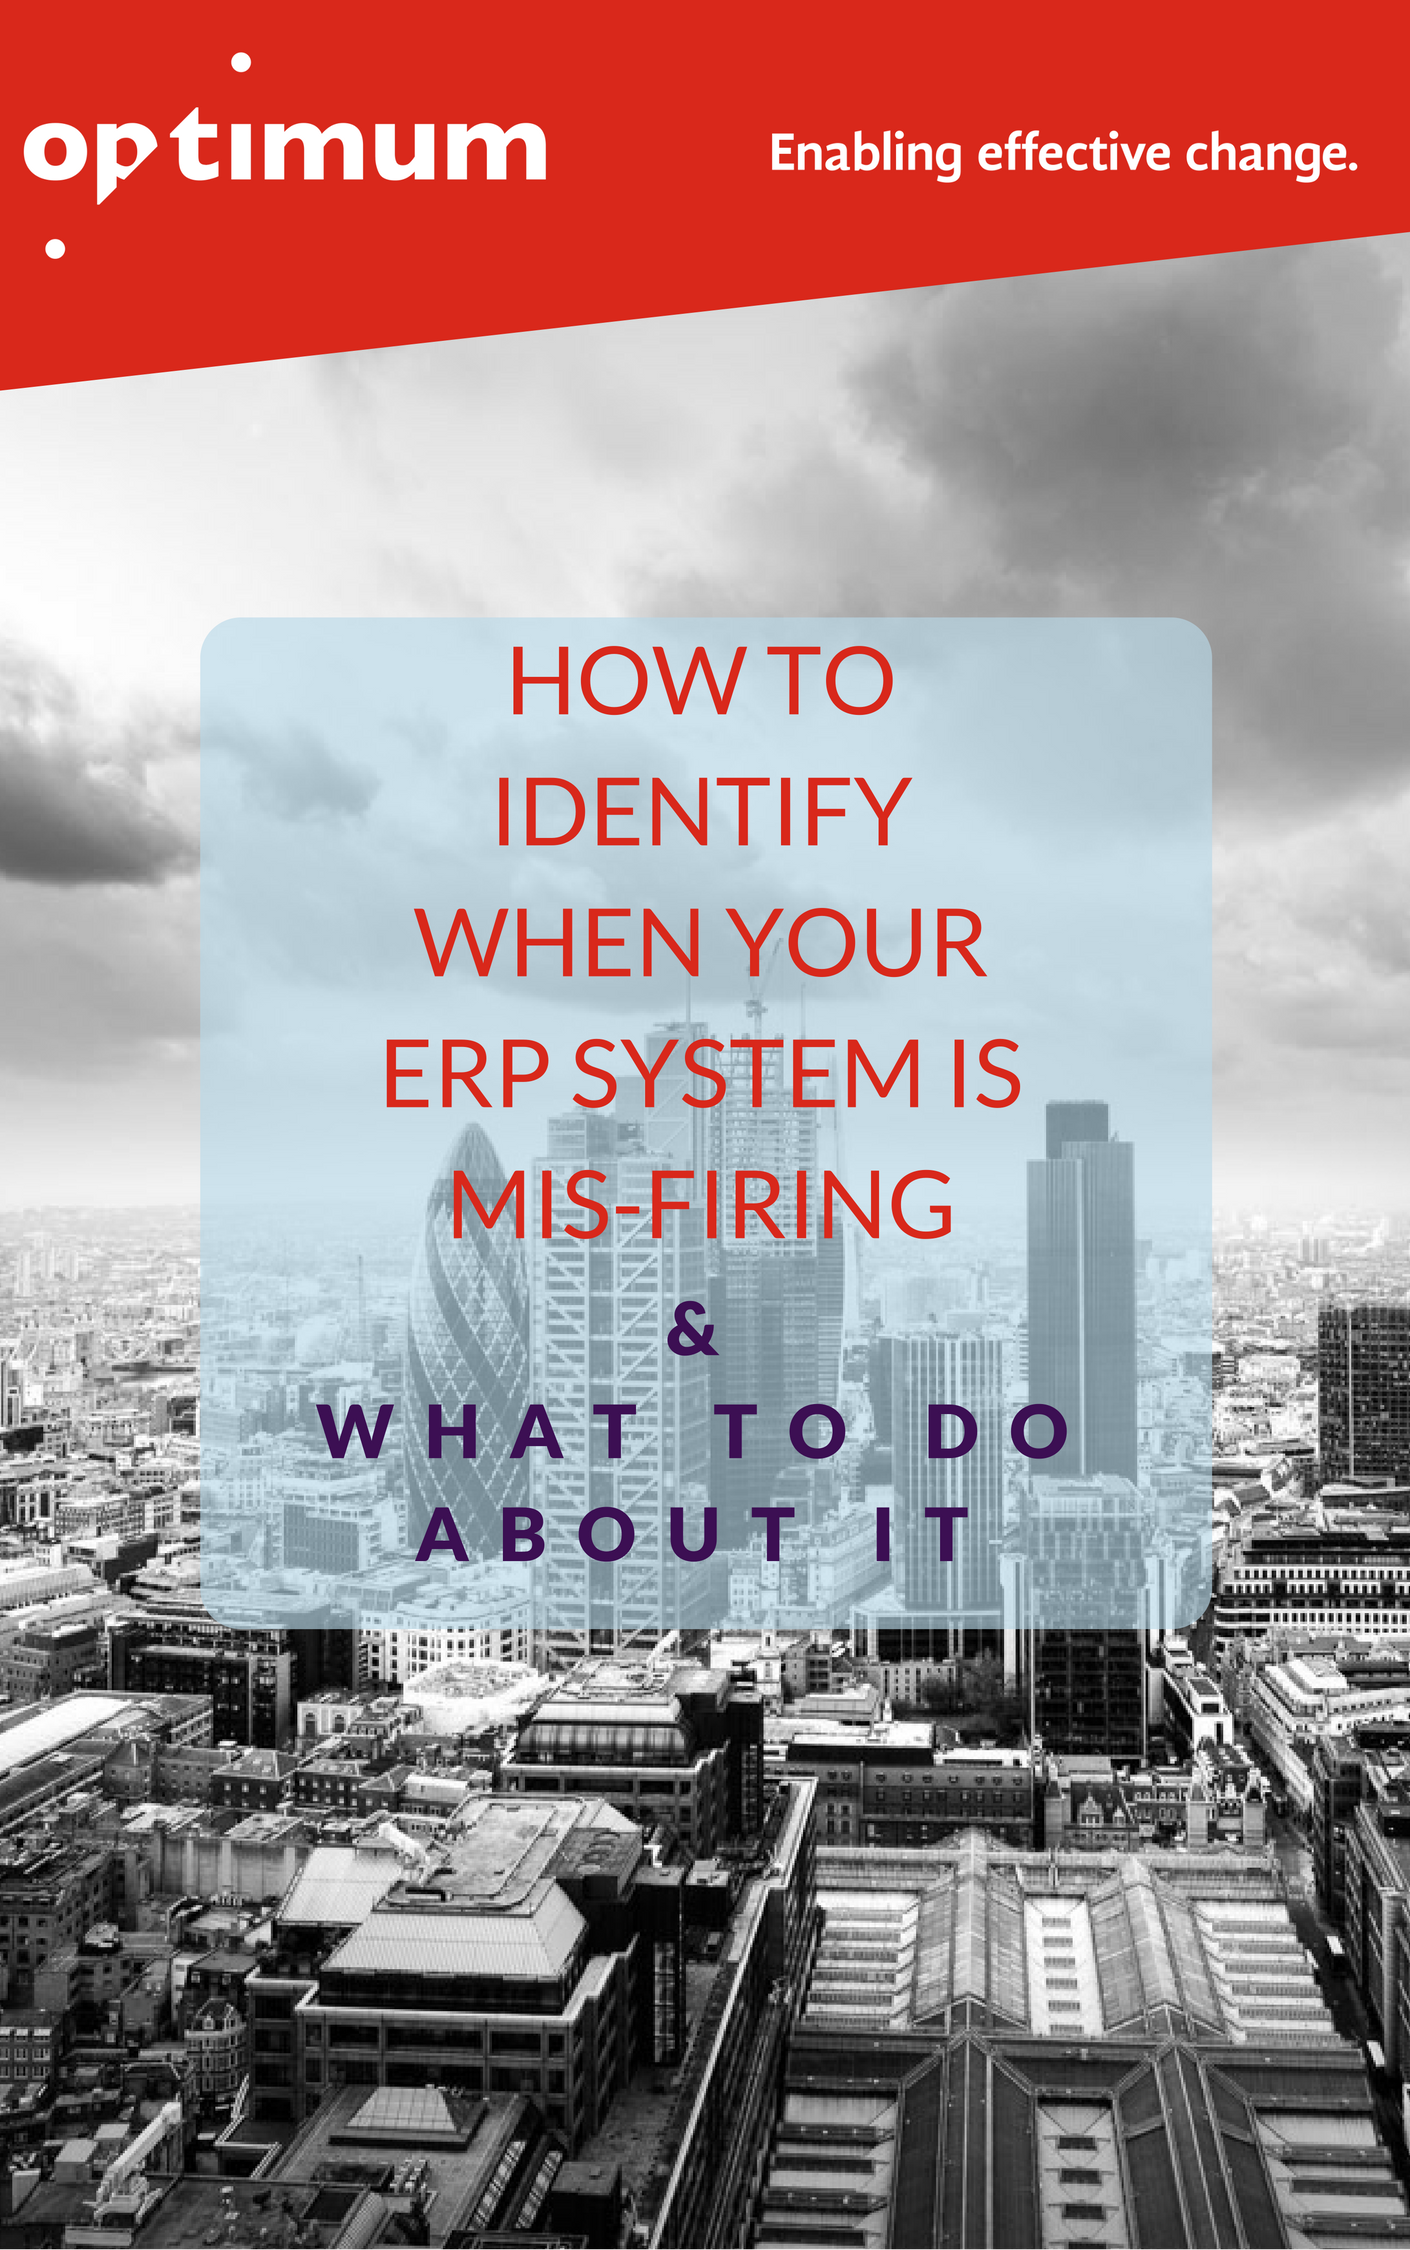 Copy of HOW TO IDENTIFY WHEN YOUR ERP SYSTEM IS MIS-FIRING.png